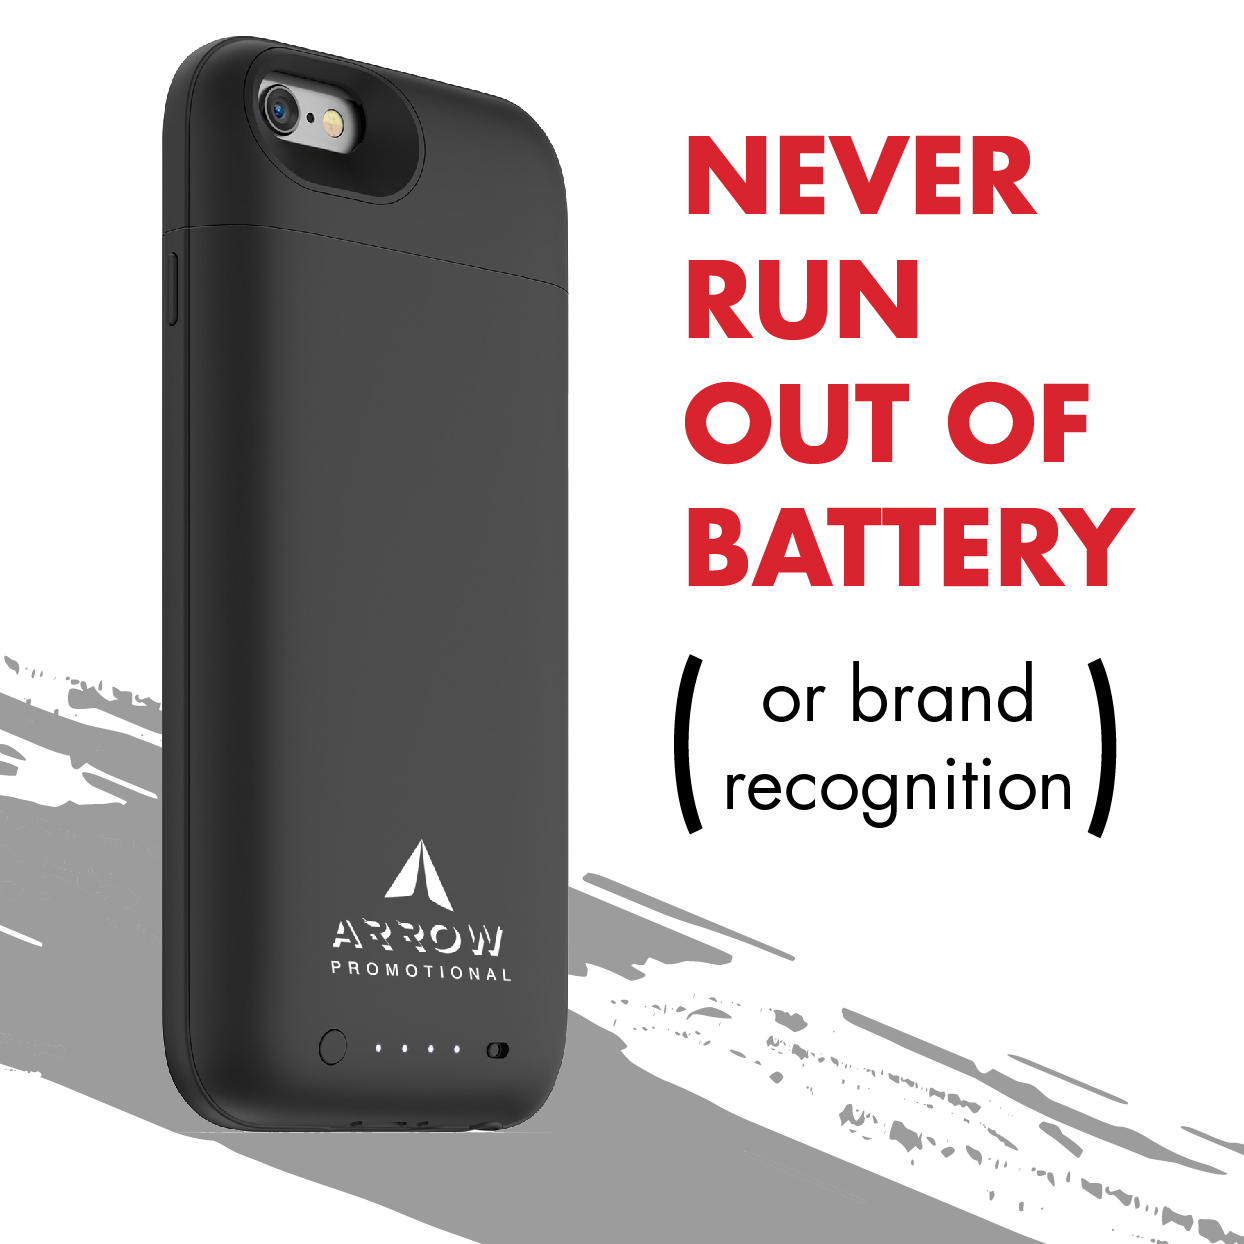 #ArrowPromotional #branded #products #marketing #advertising #brands #logo #promotions #corporategifts #holidaygift #clients #employees #HR #recruiting #officemanager #admin #companyswag #giveaways #events #planners #mobile #tech #battery #charger #brand #agency #creative #PR #swag #coffee